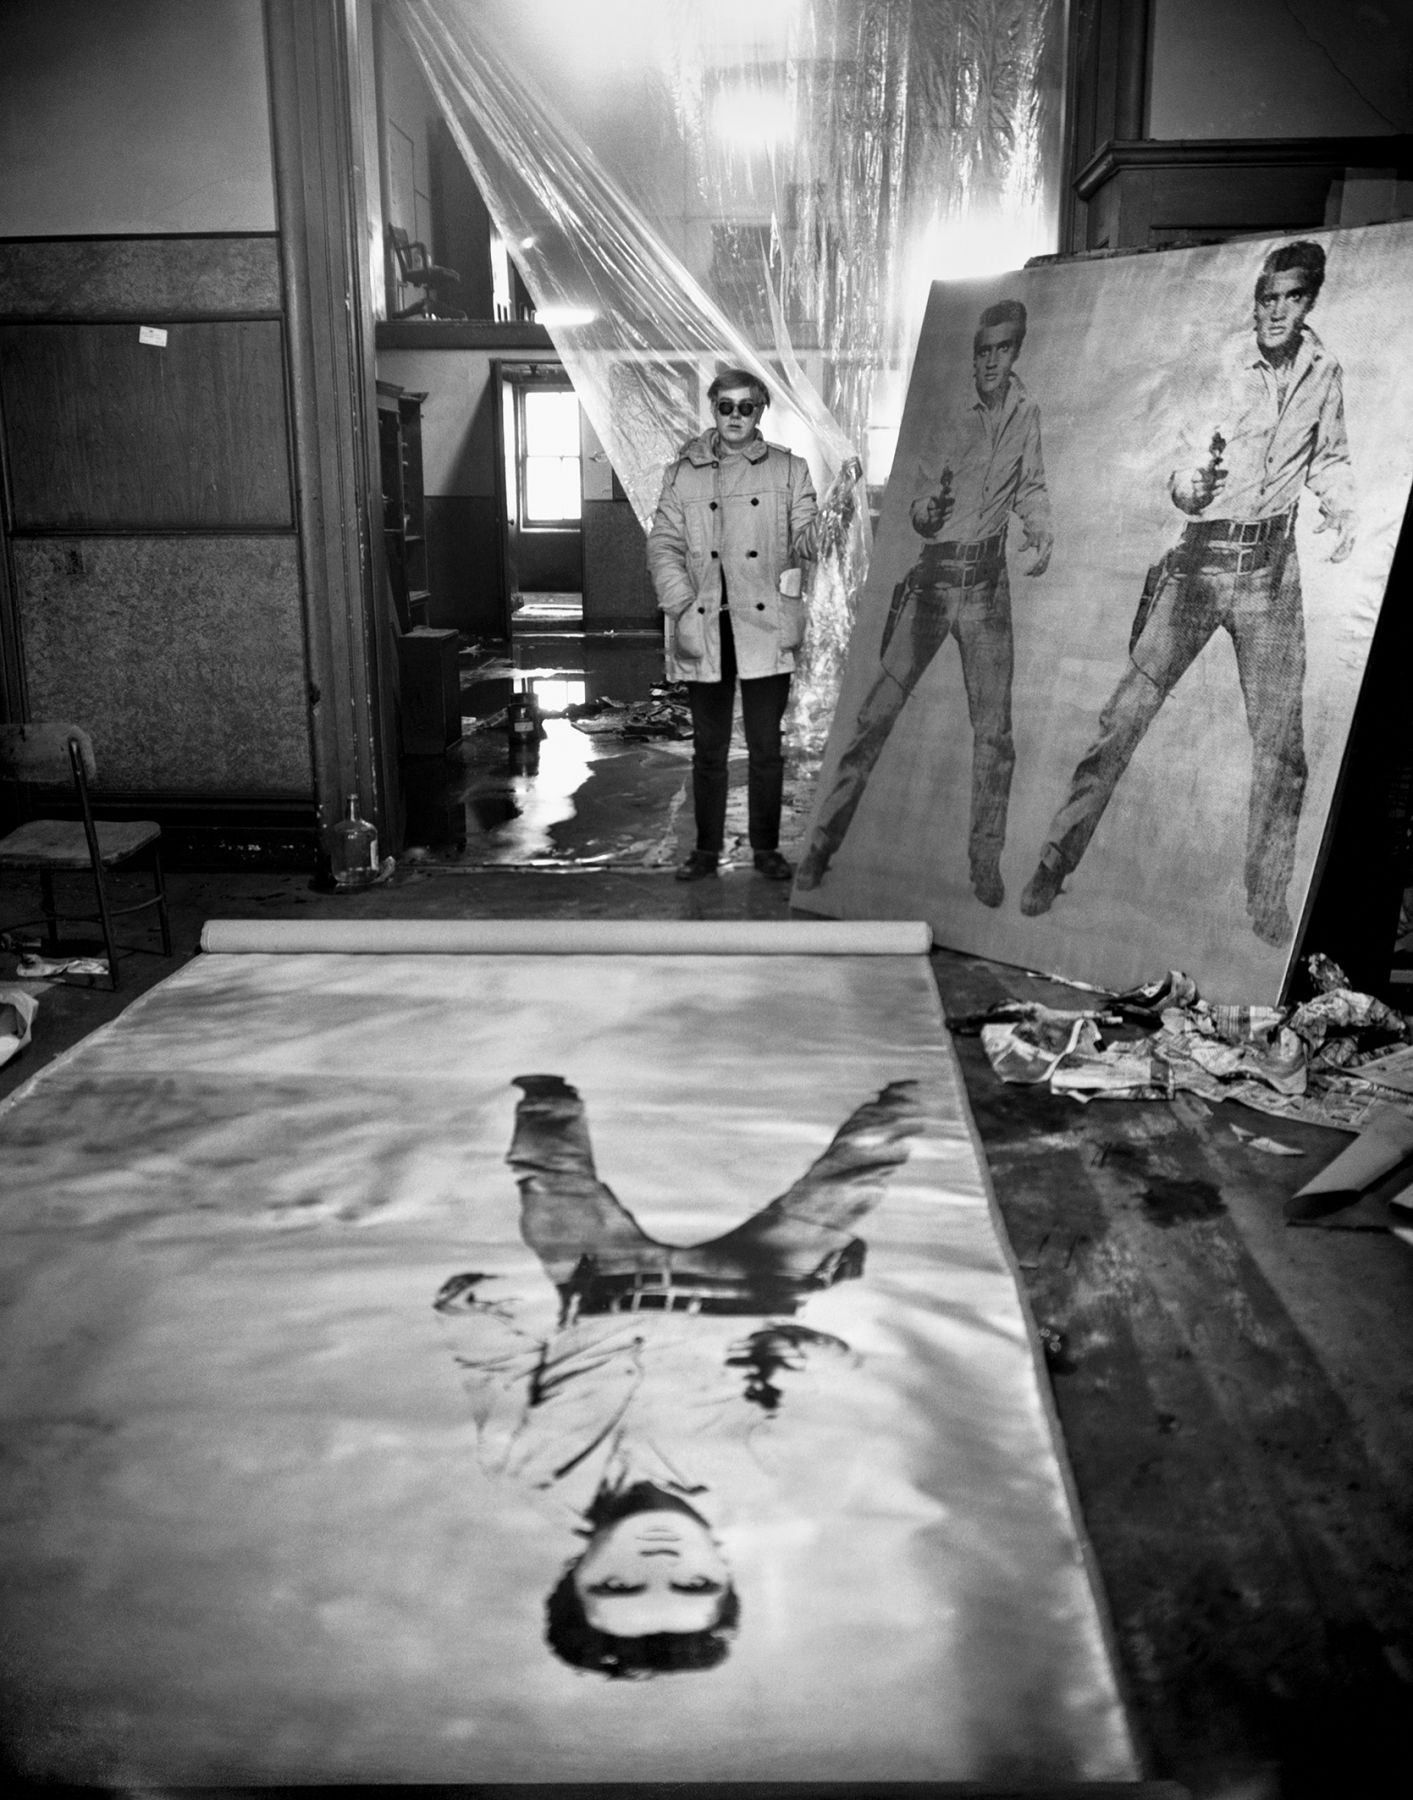 Andy Warhol (In his studio with Elvis Presley Print), New York. 1962, 20 x 16 inch gelatin silver print